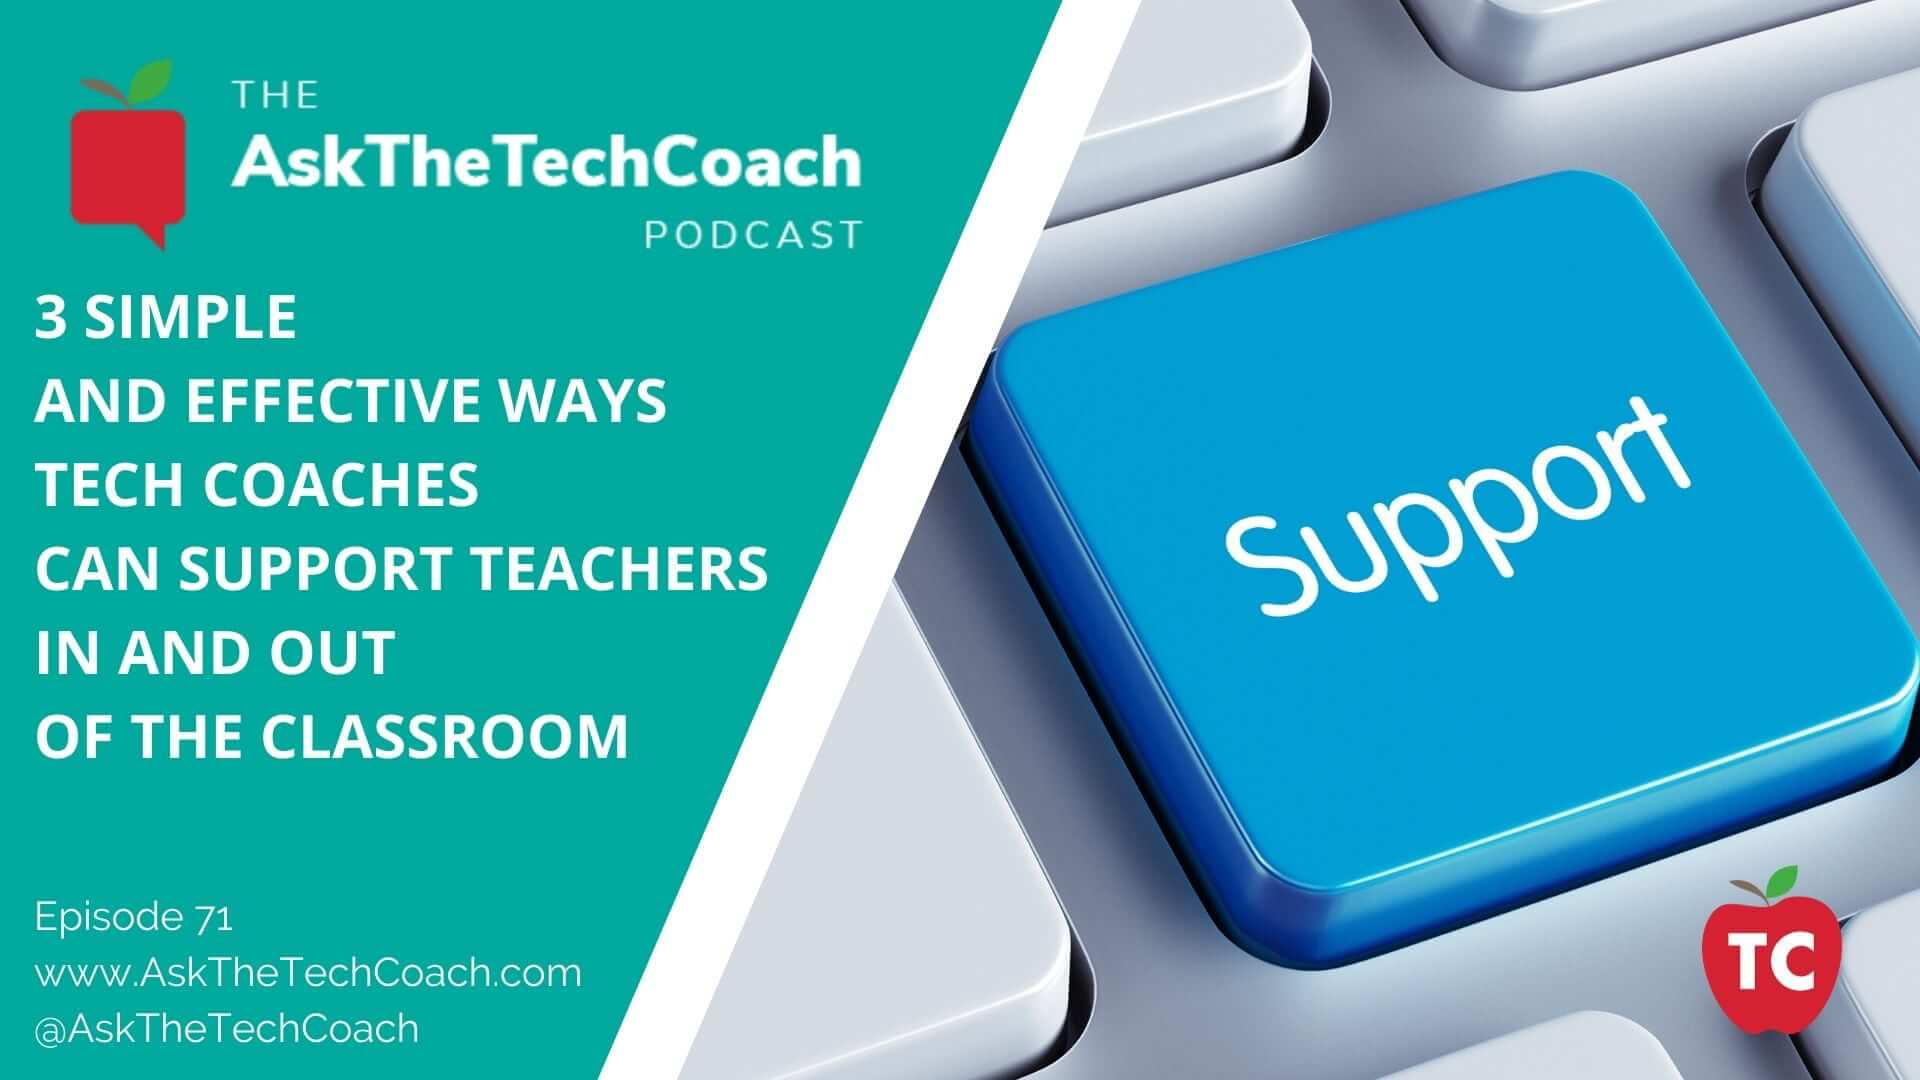 3 Simple and Effective Ways Tech Coaches Can Support Teachers In and Out of the classroom